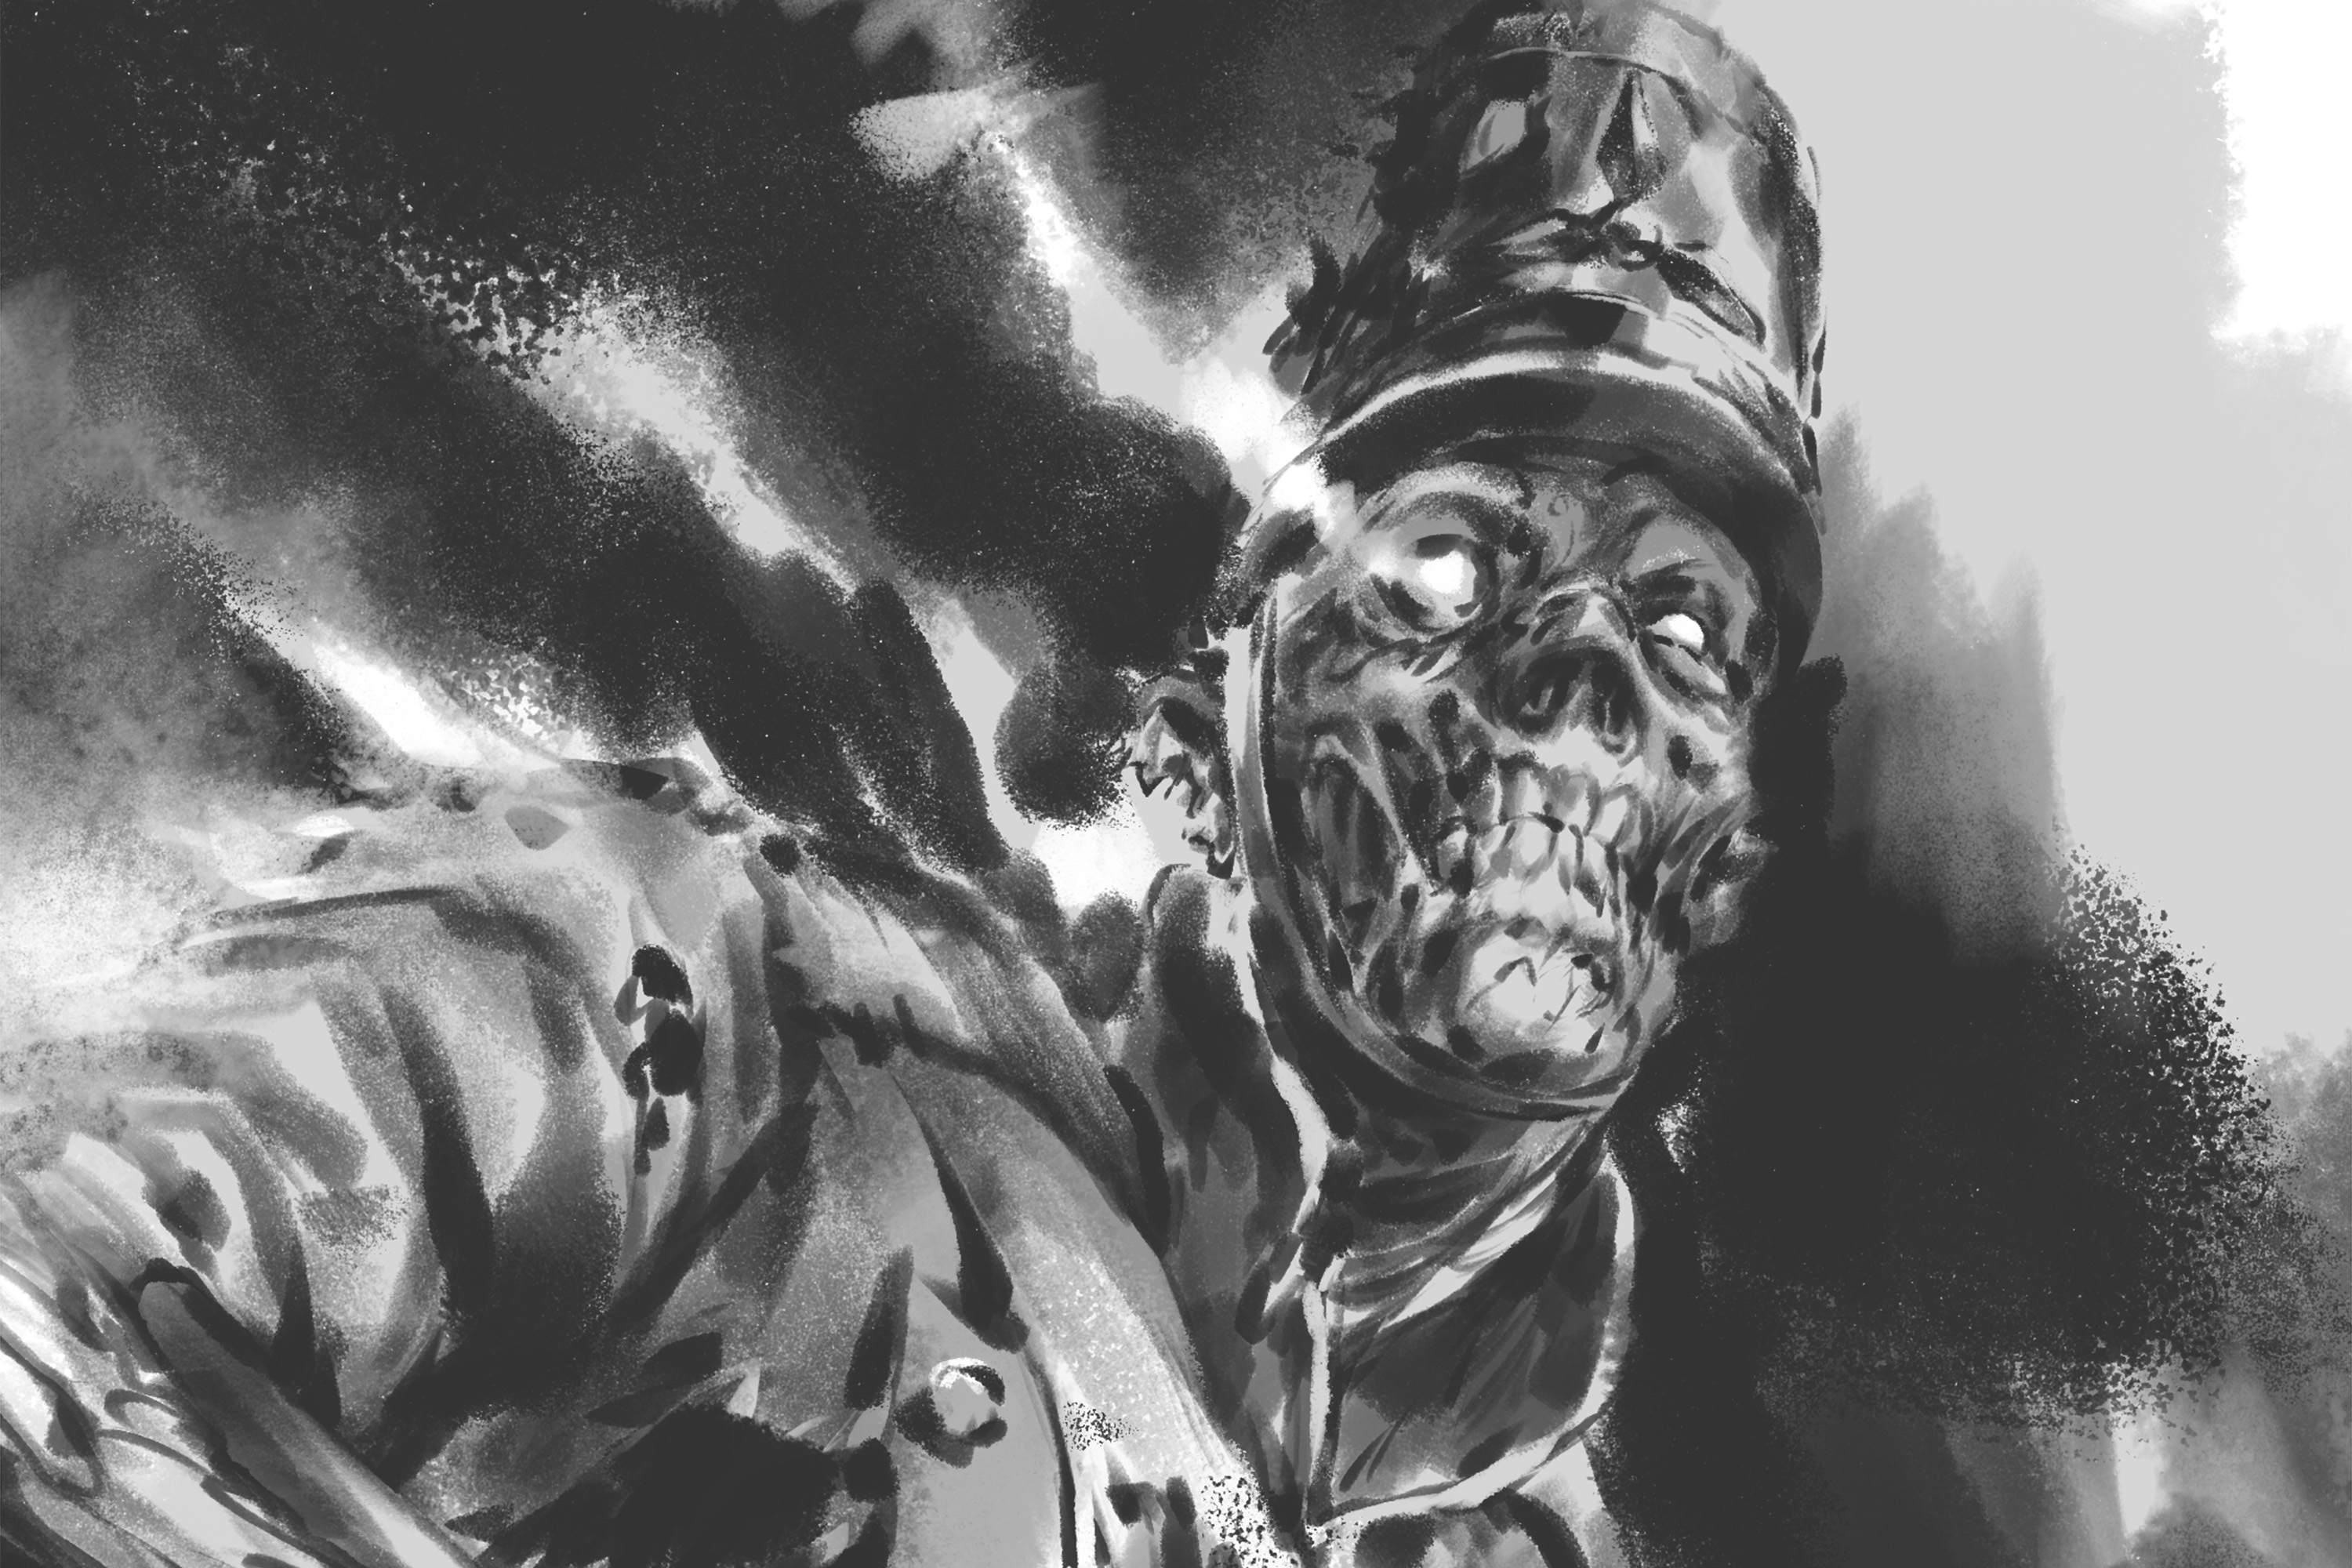 A zombified soldier from Napolean's Grand Army as portrayed in Silver Bayonet